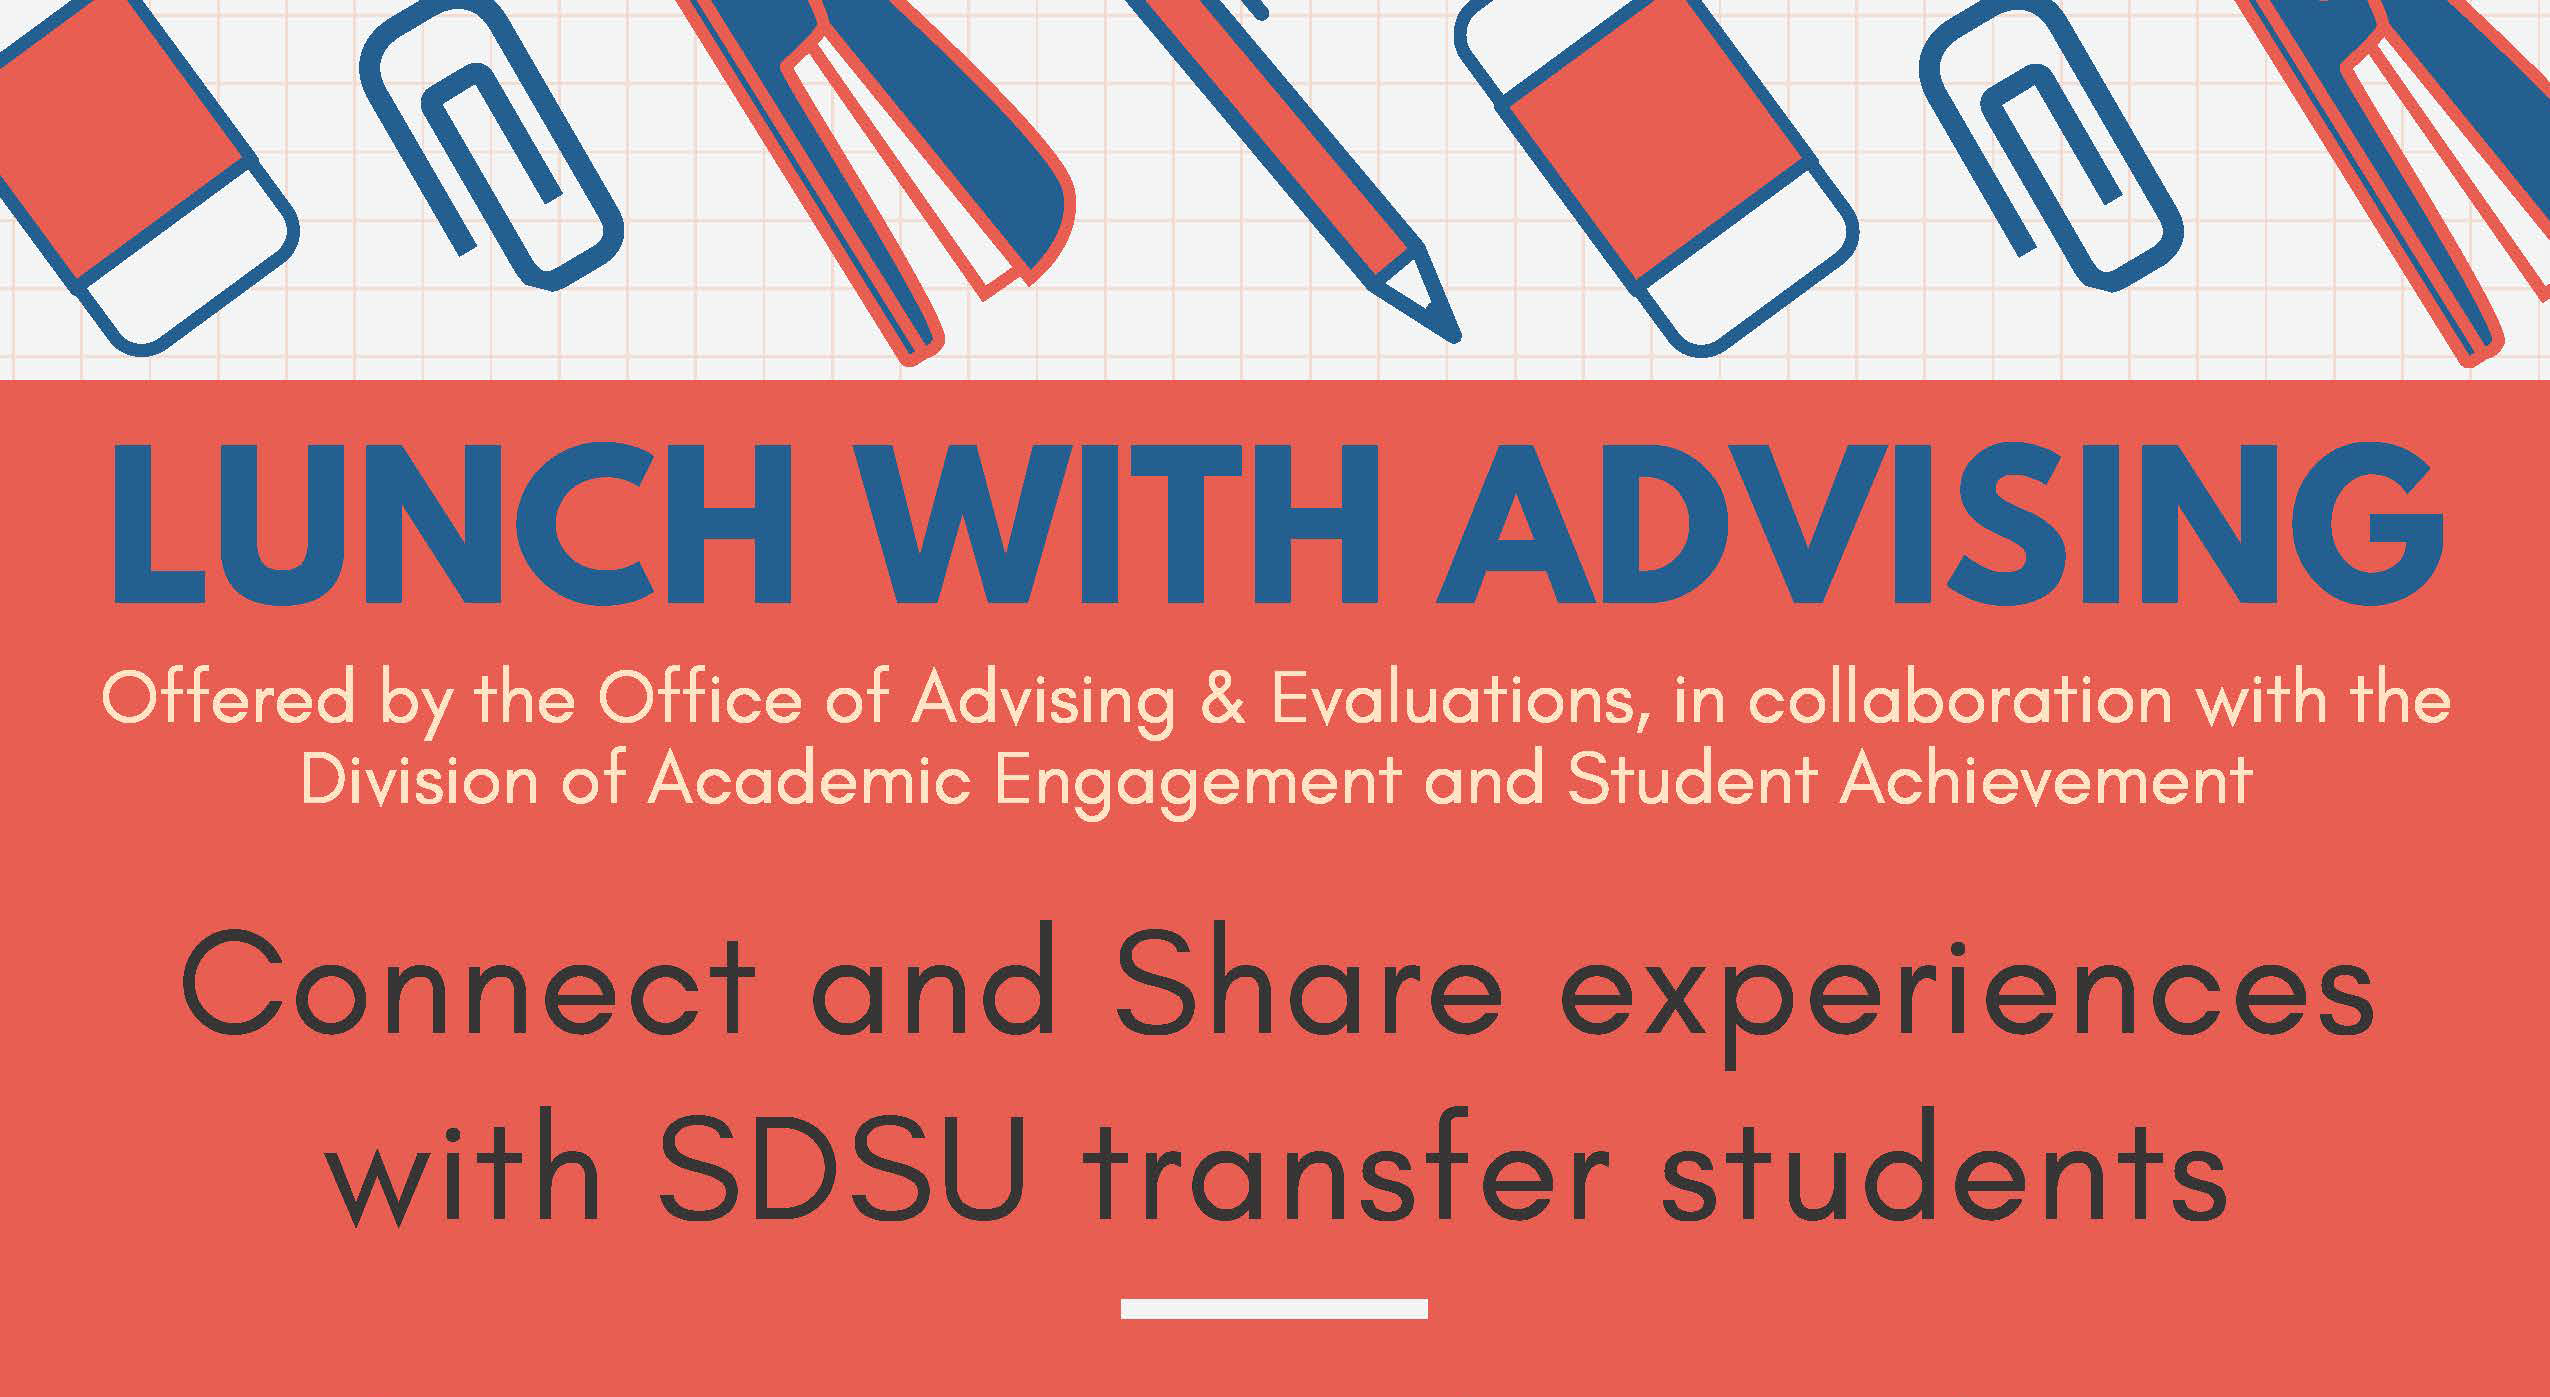 Flyer for lunch with advising event